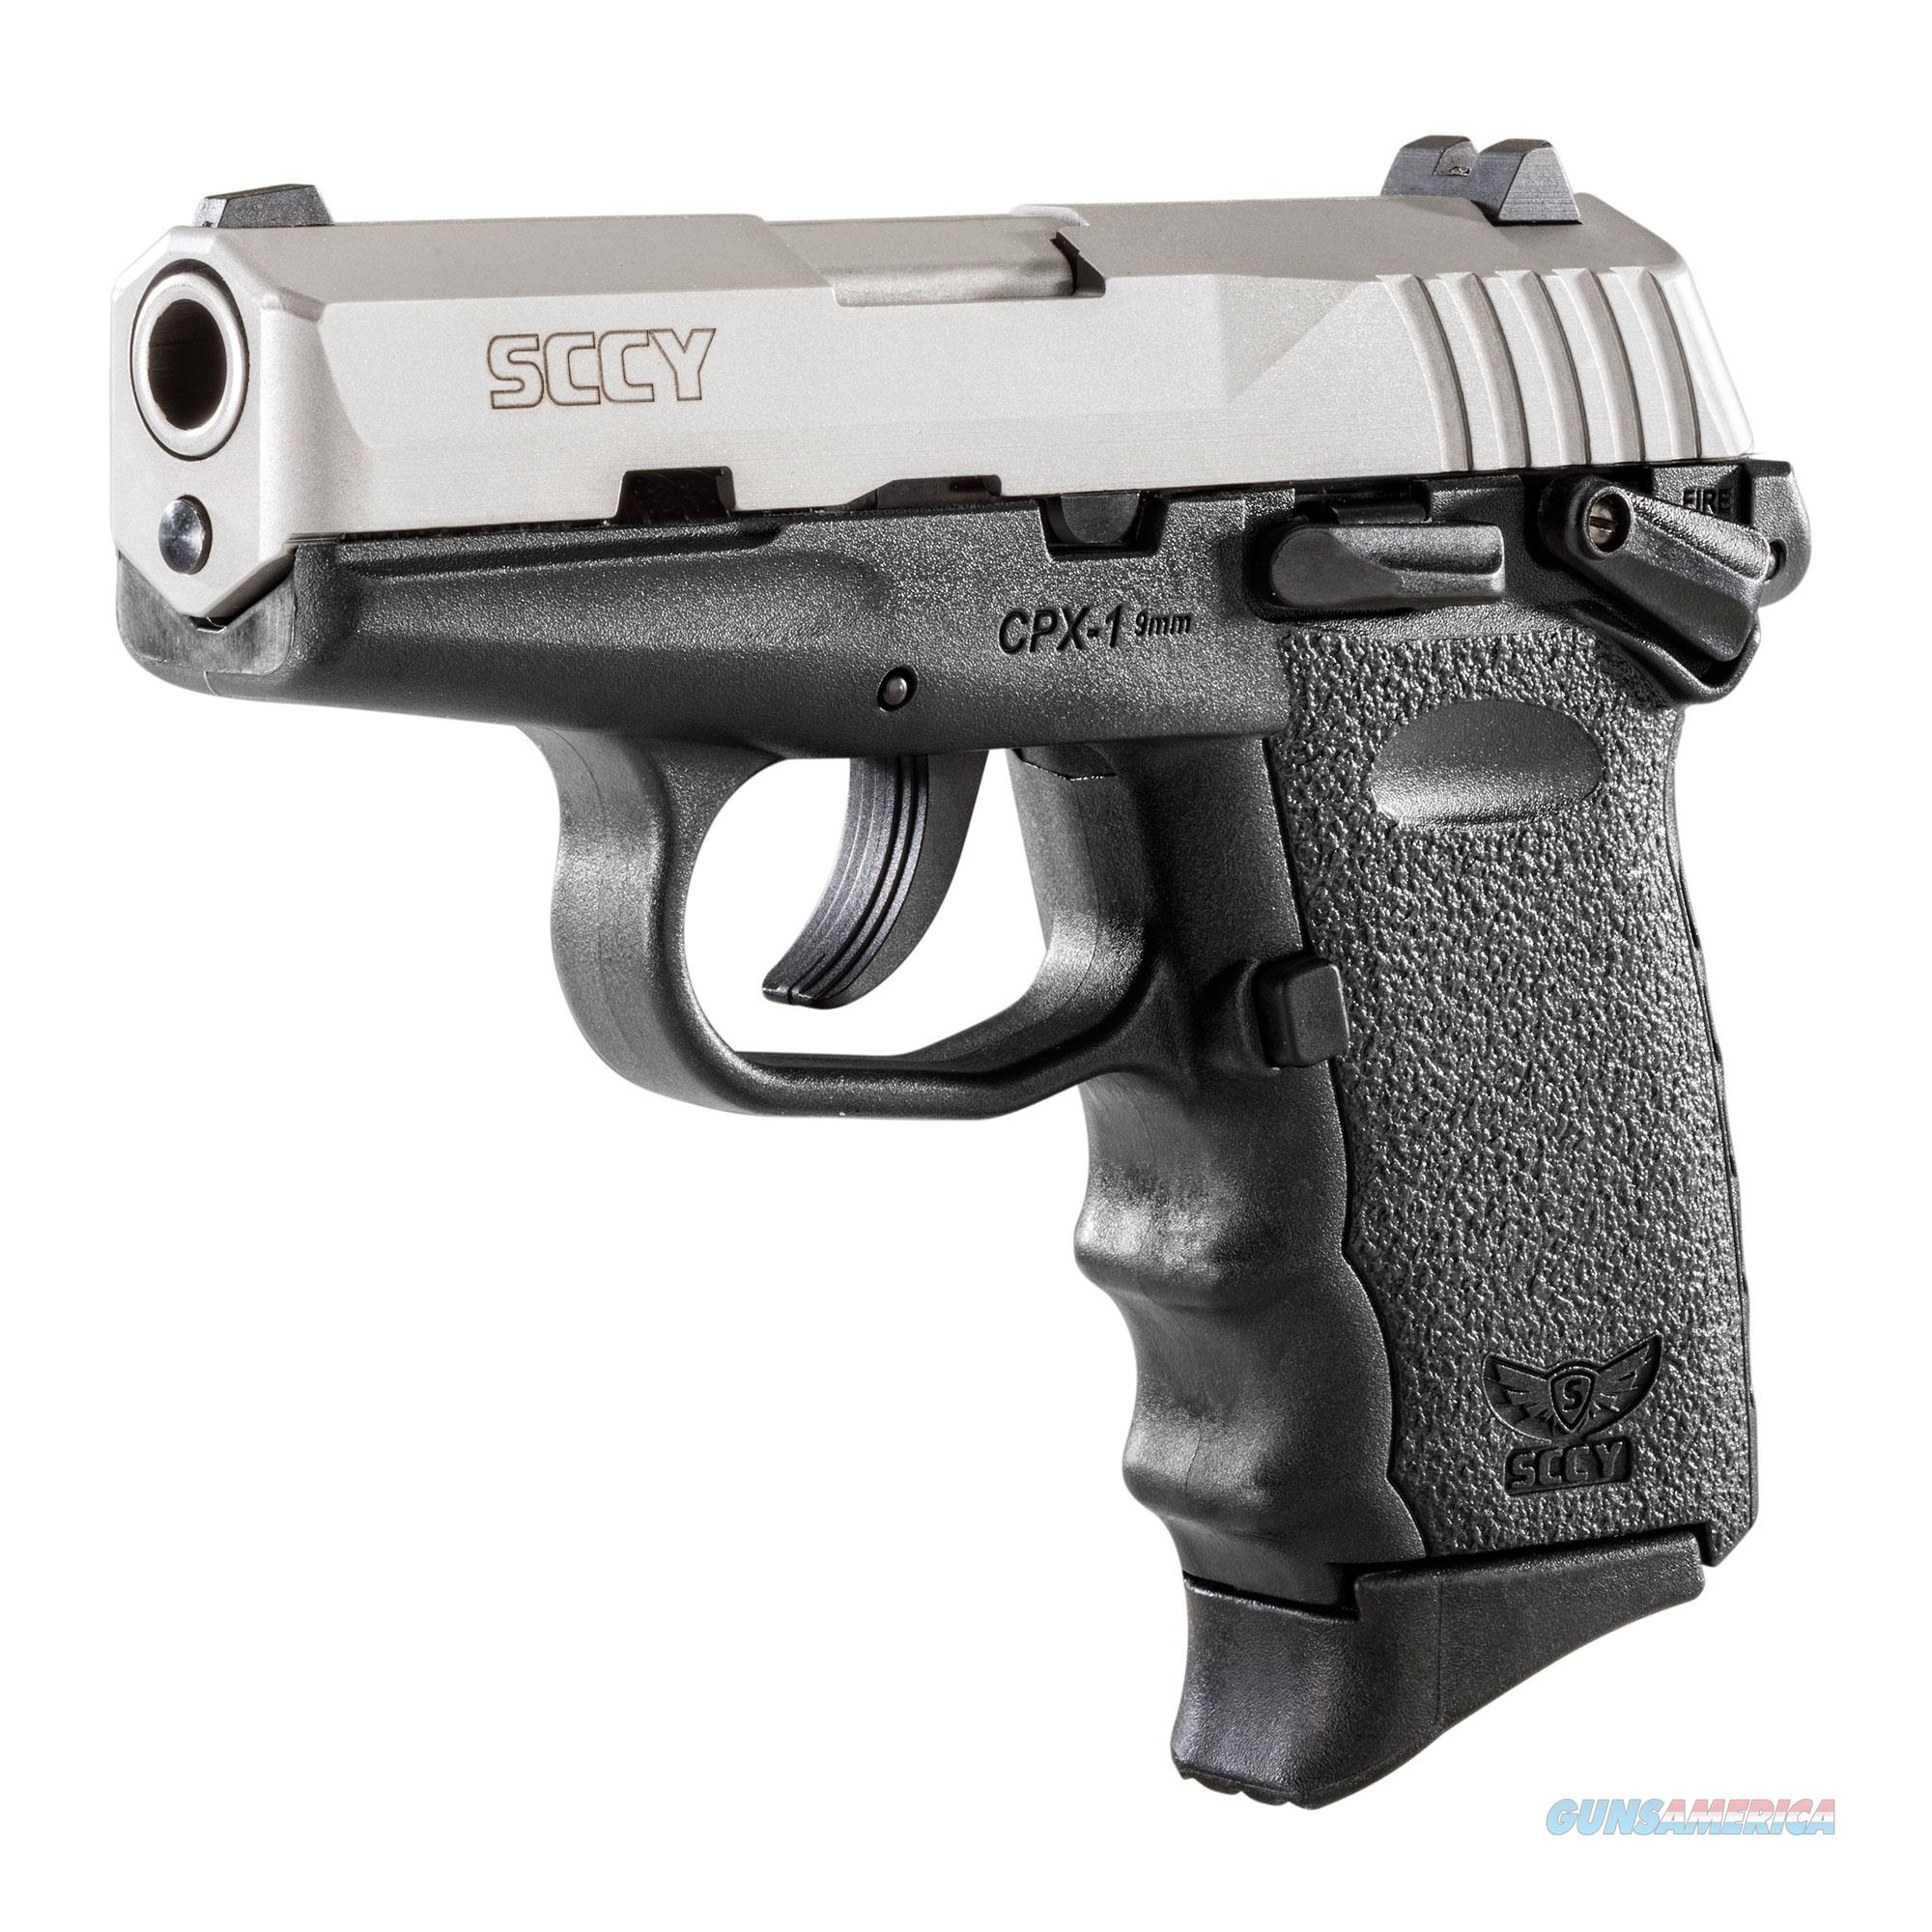 SCCY CPX-1 9MM TWO TONE STAINLESS / BLACK 10+1 CAPACITY  Guns > Pistols > SCCY Pistols > CPX1